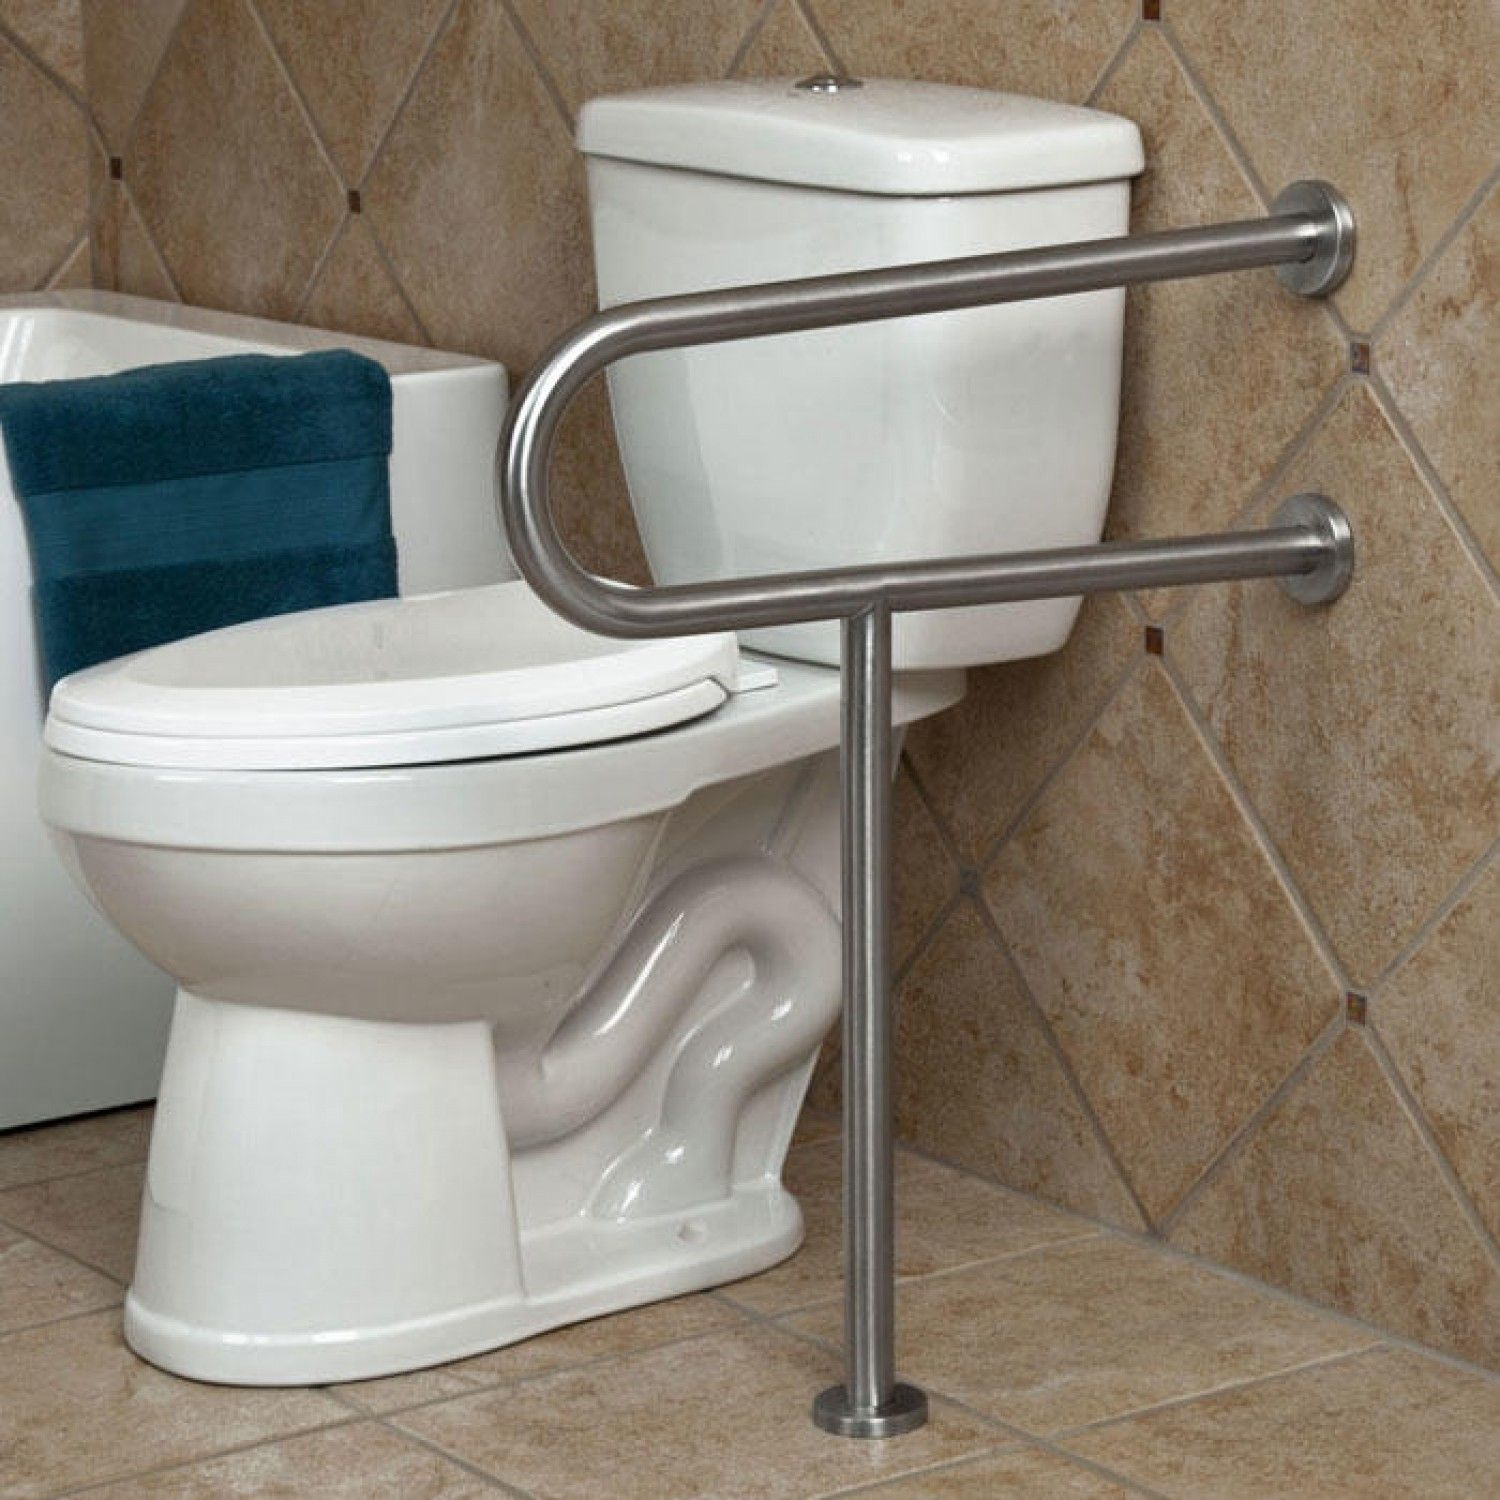 Handicap Bathroom Toilet Bars - Bathroom Design Ideas | Handicap ...